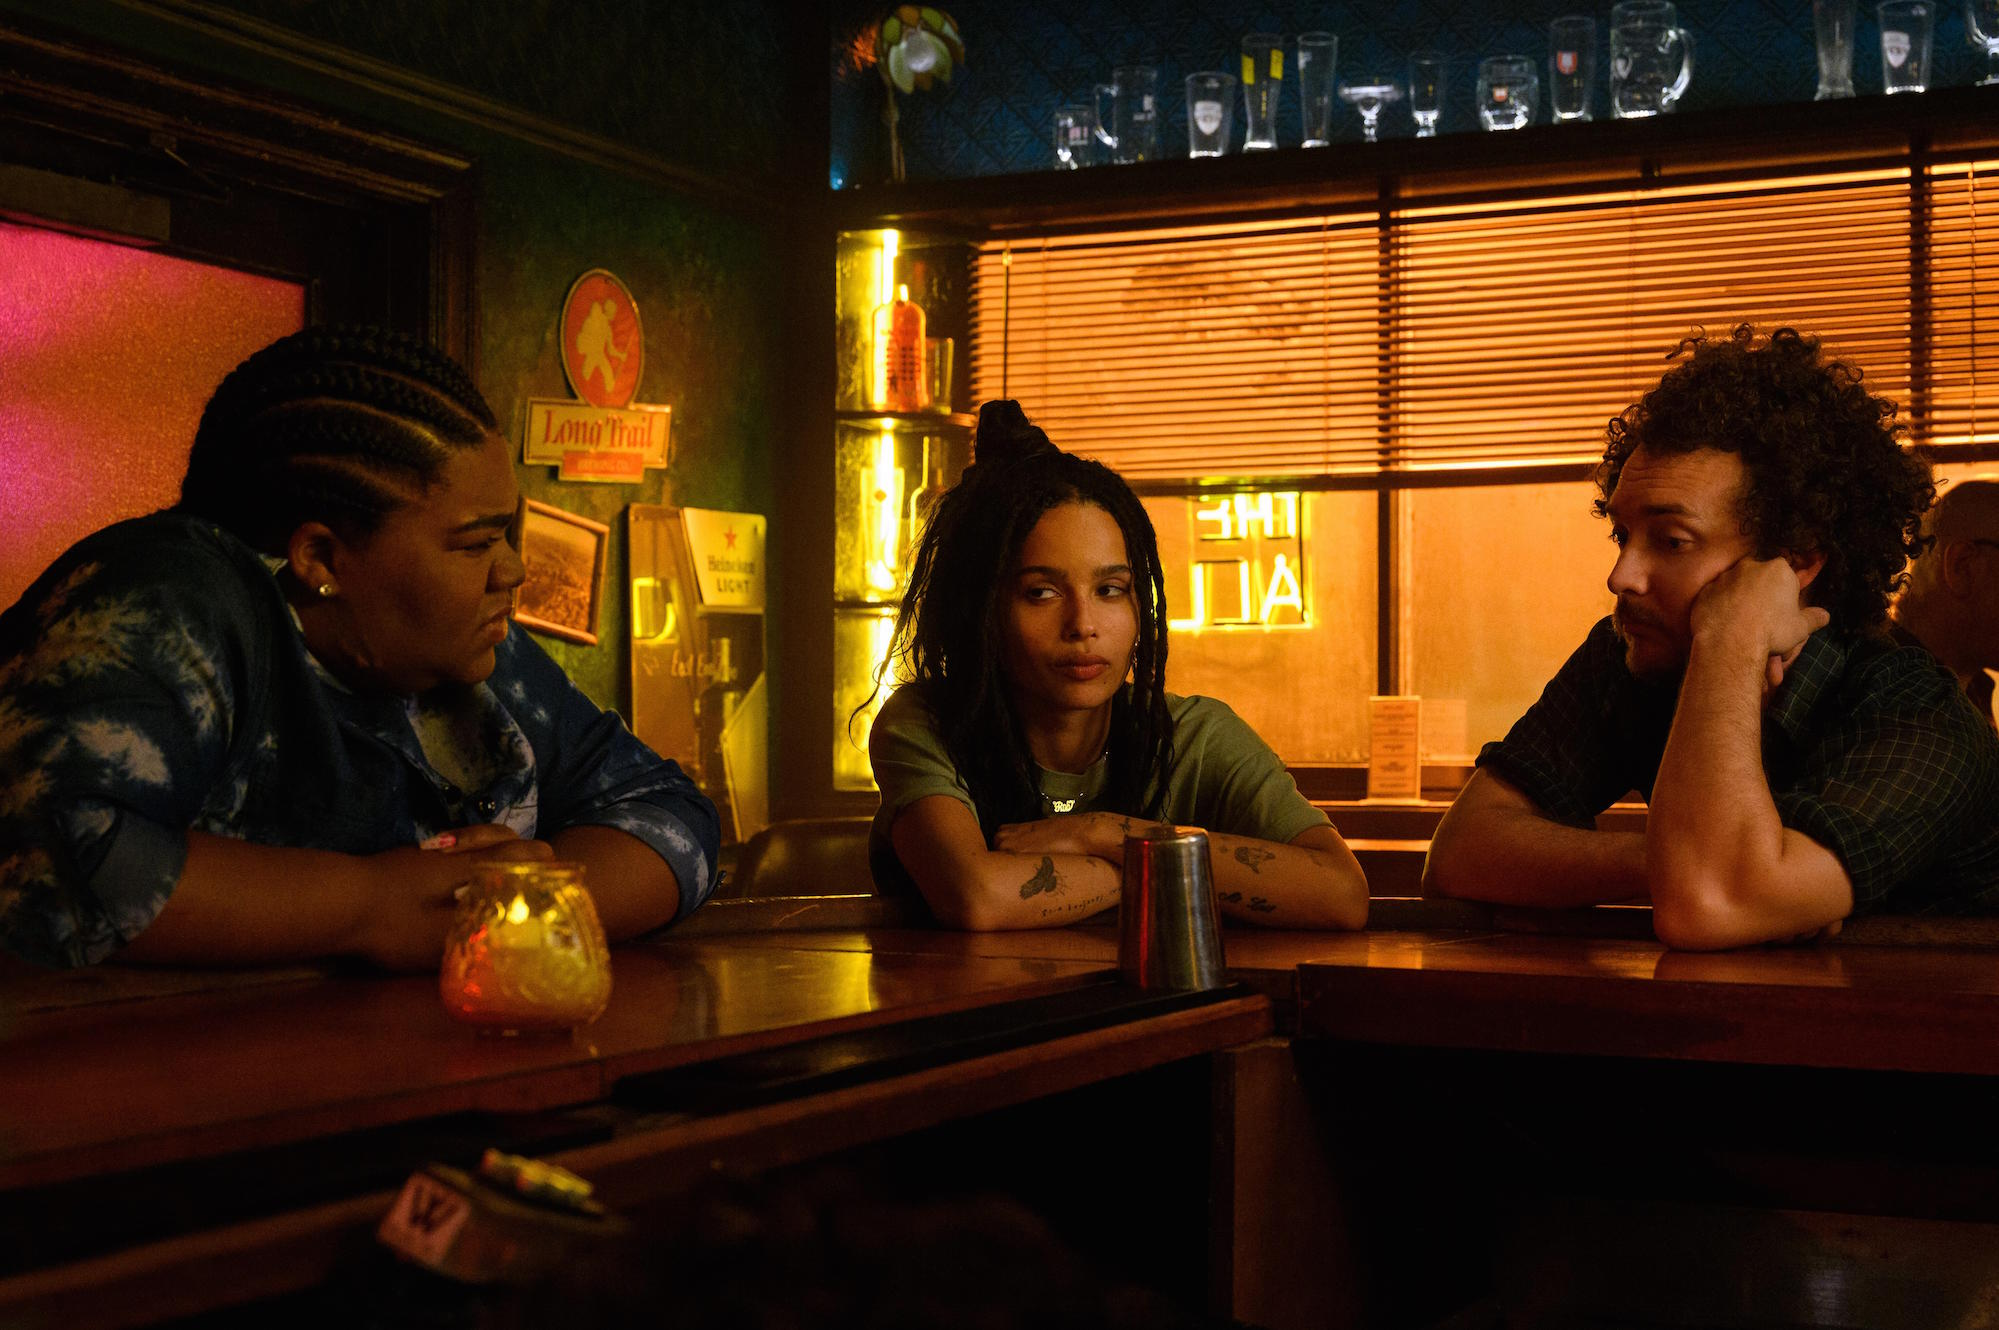 """High Fidelity -- """"Fun Rob"""" - Episode 109 -- It's A milestone birthday forces Rob to confront her past and the demise of her relationship with Mac. Cherise (Da'Vine Joy Randolph), Robyn (Zoë Kravitz), and Simon (David H. Holmes), shown. (Photo by: Phillip Caruso/Hulu)"""